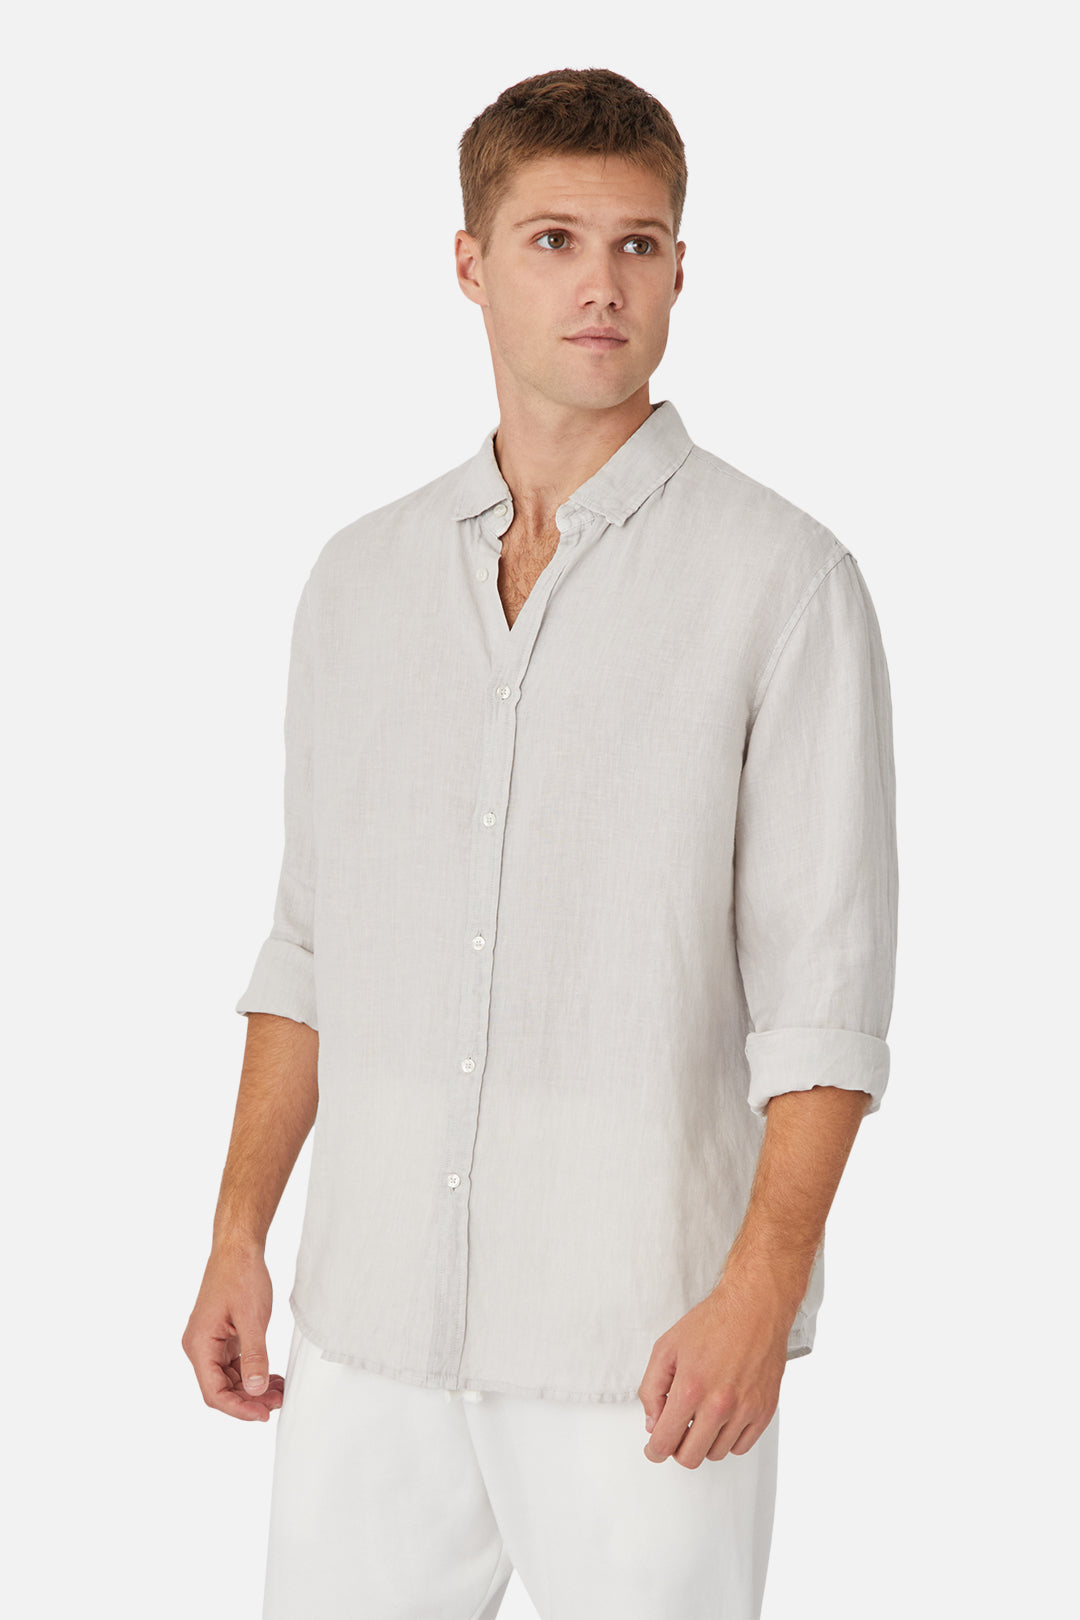 The Tennyson Linen L/S Shirt - Talc